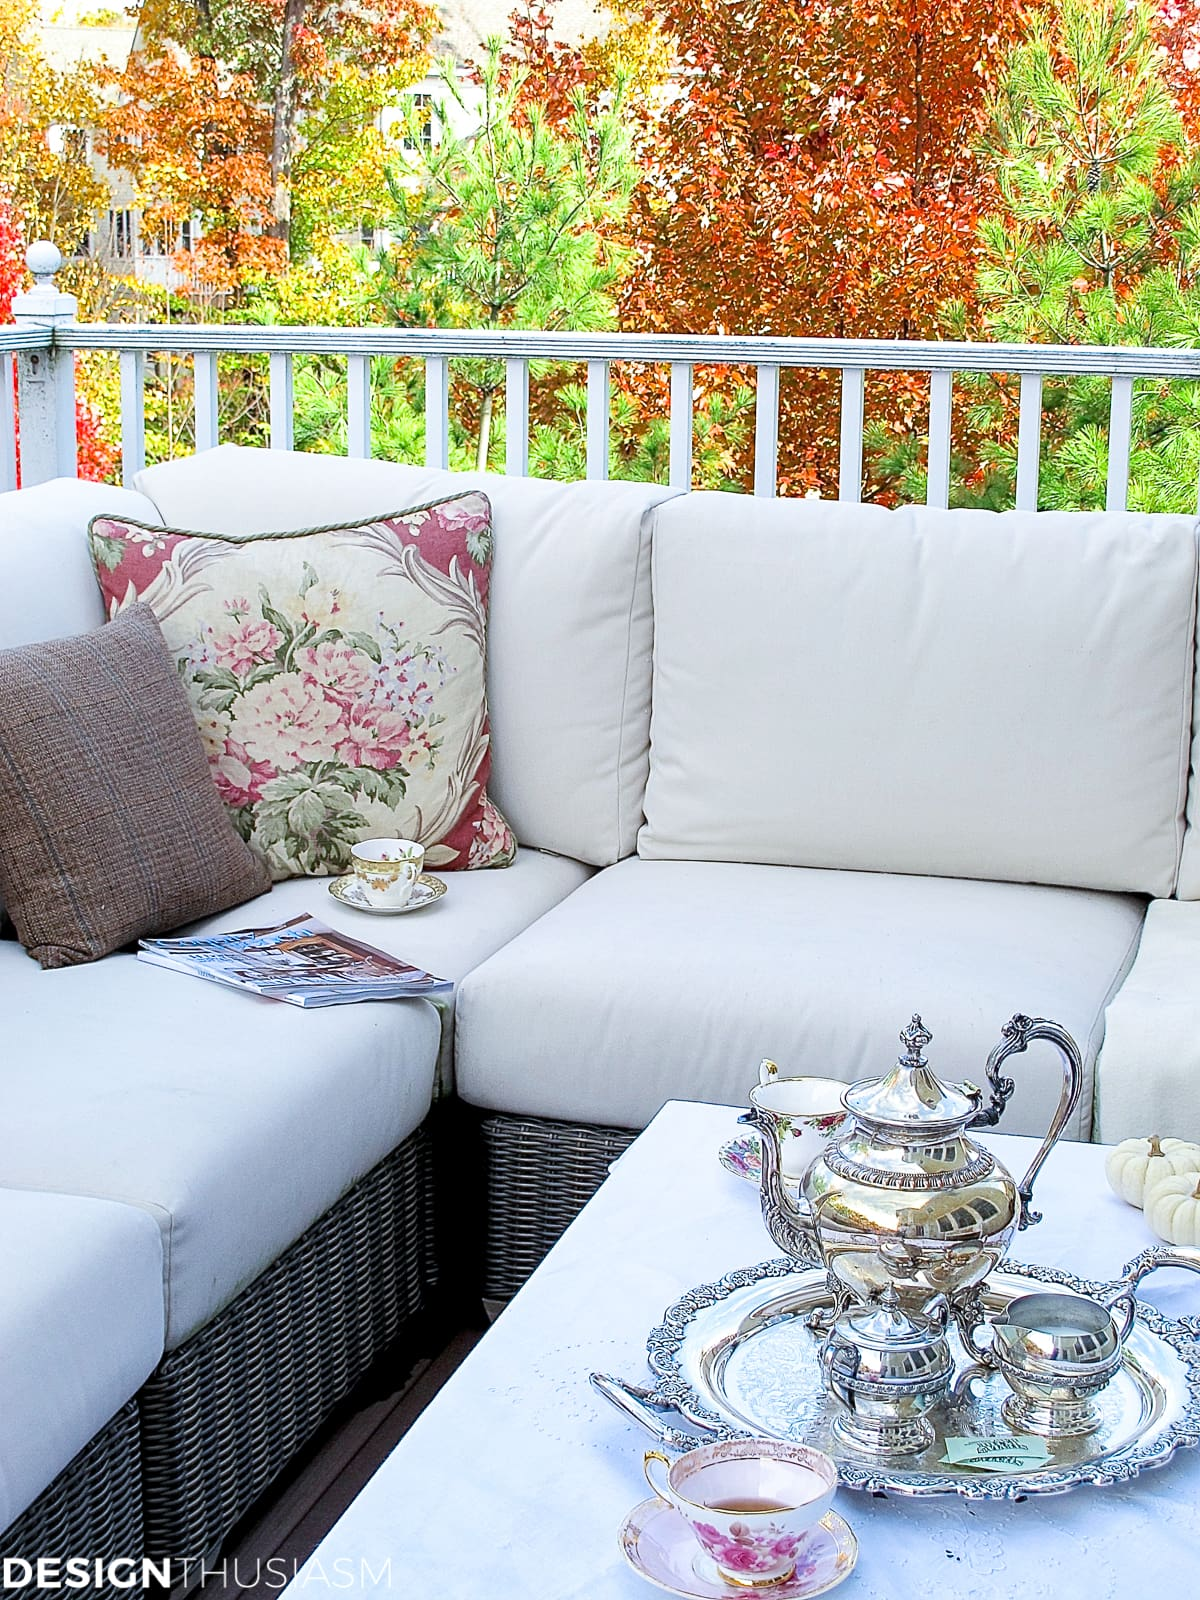 autumn outdoor room with french country patio decor